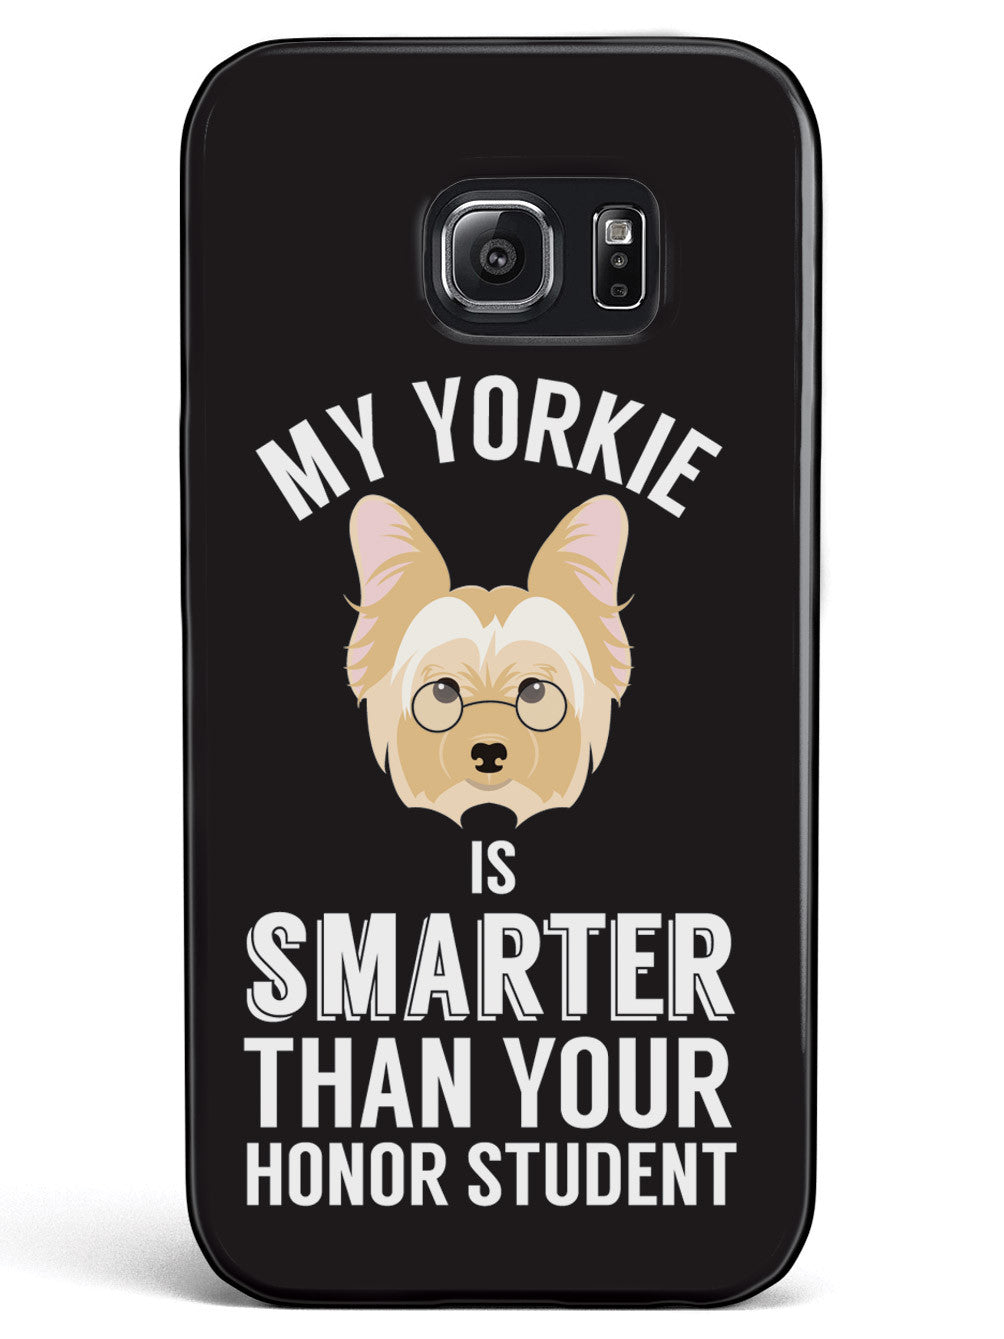 Smarter Than Your Honor Student - Yorkie Case